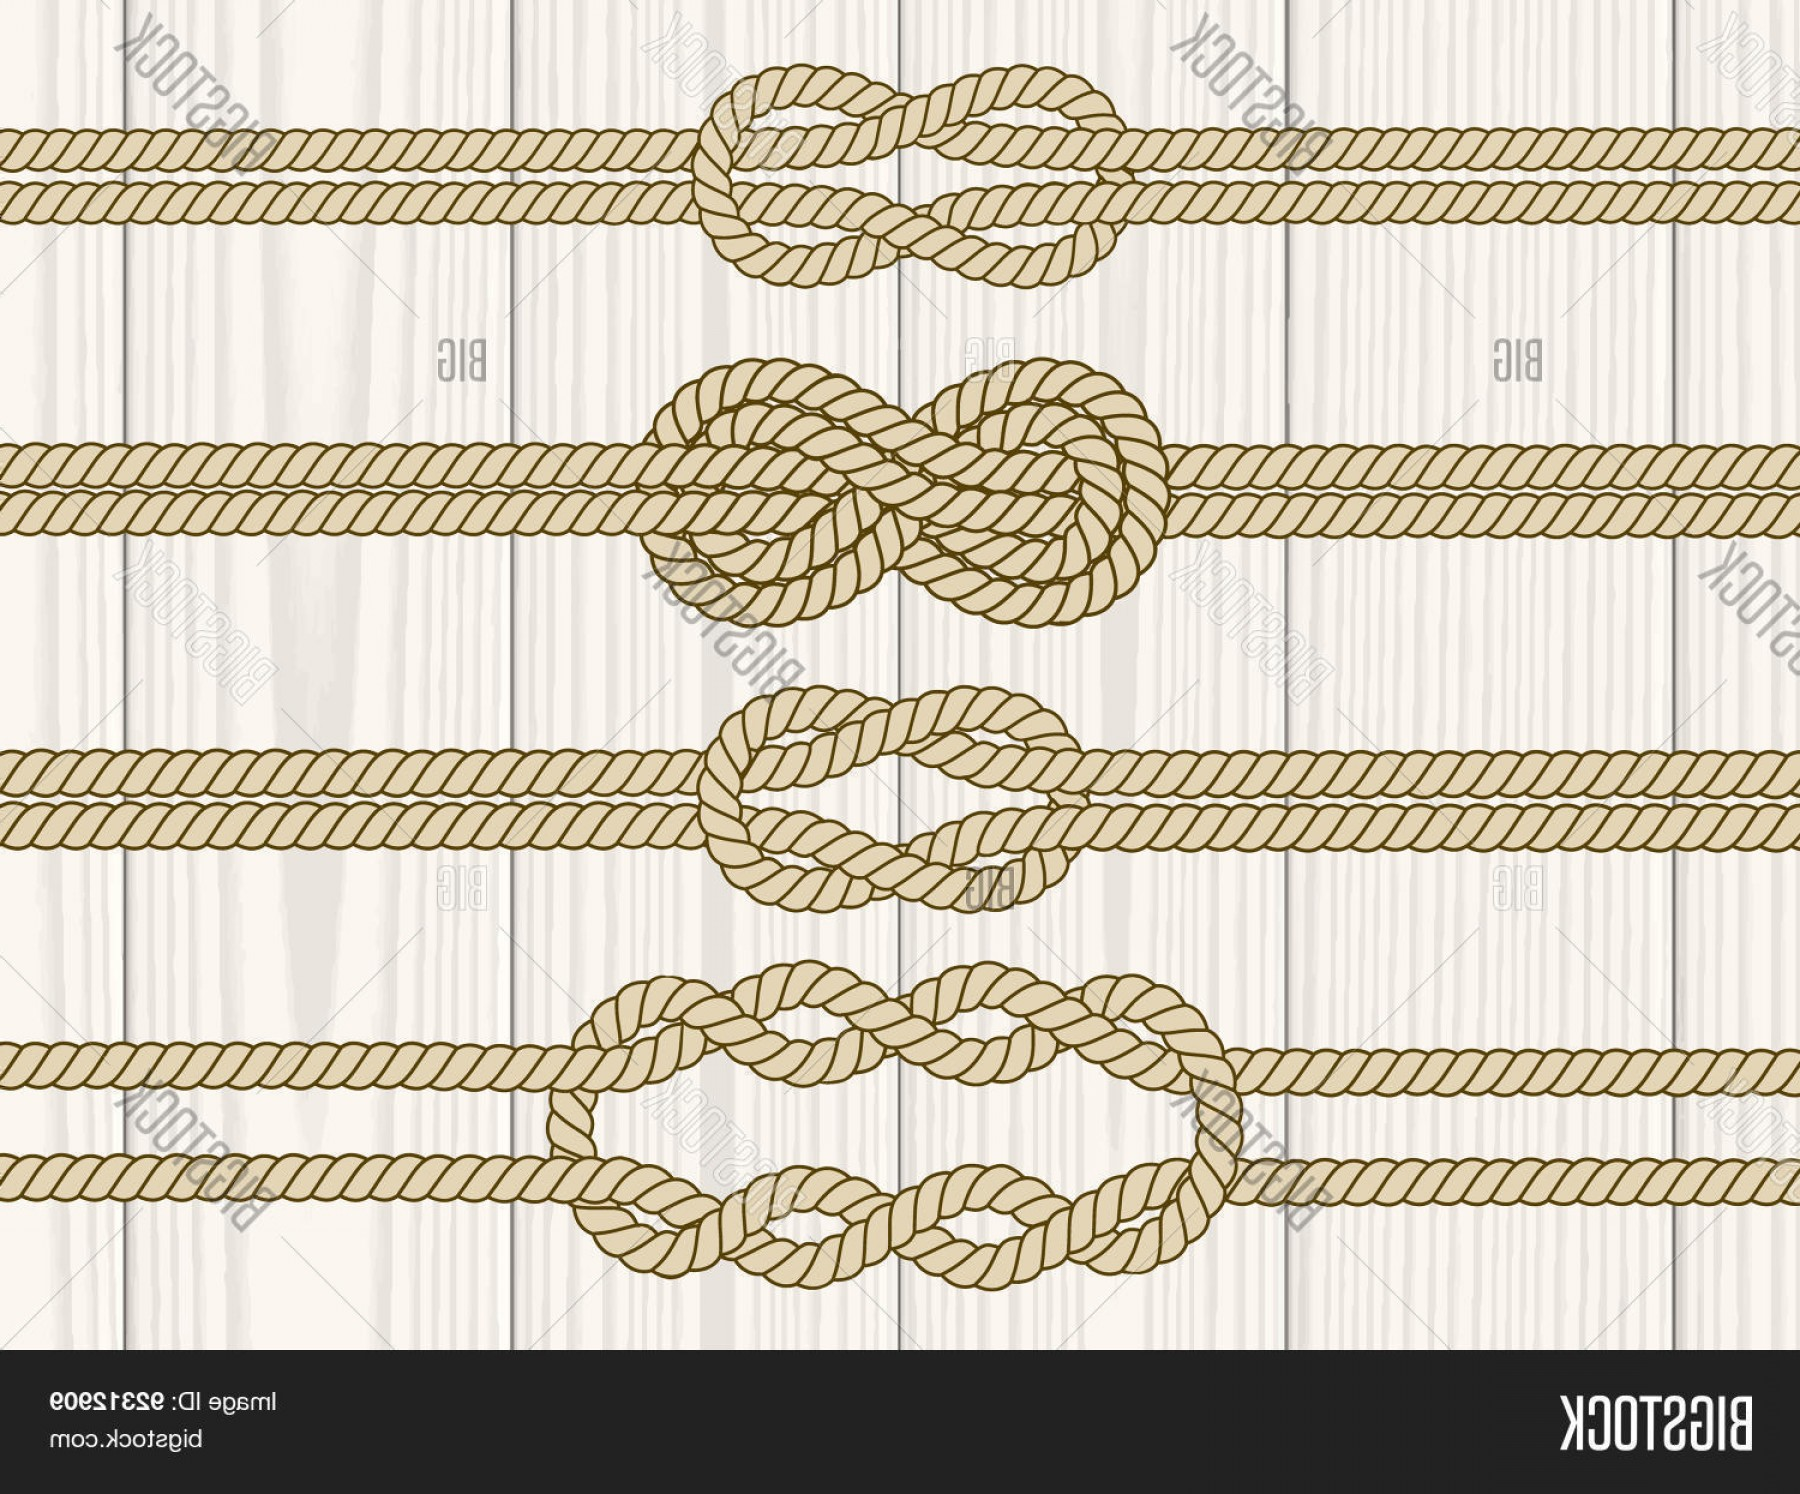 Nautical Text Divider Vector: Stock Vector Sailor Knot Dividers Set